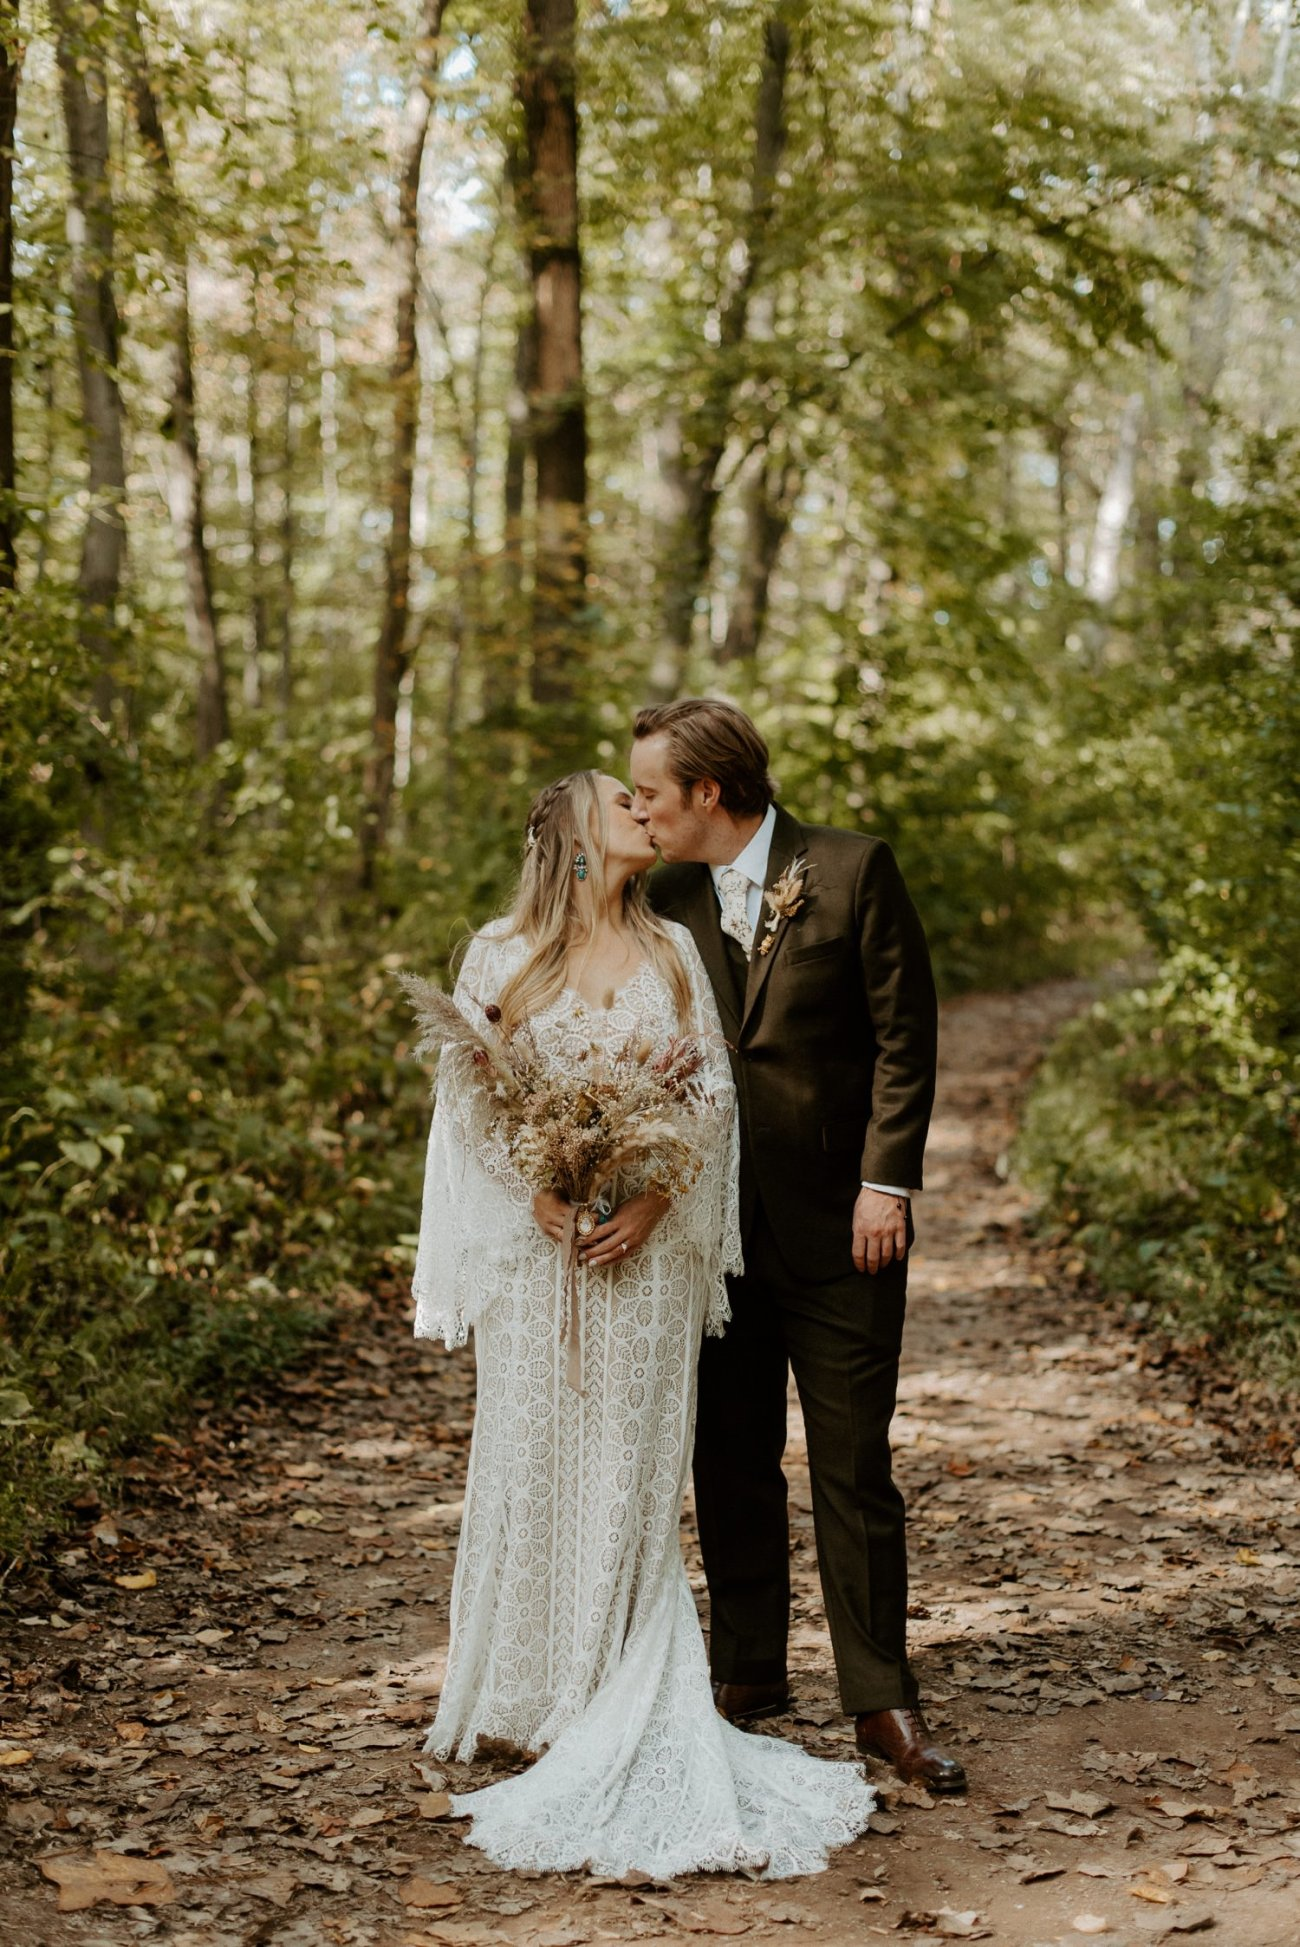 Bride and Groom Wedding Portrait in South Mountain Reservation in New Jersey for their Backyard Wedding